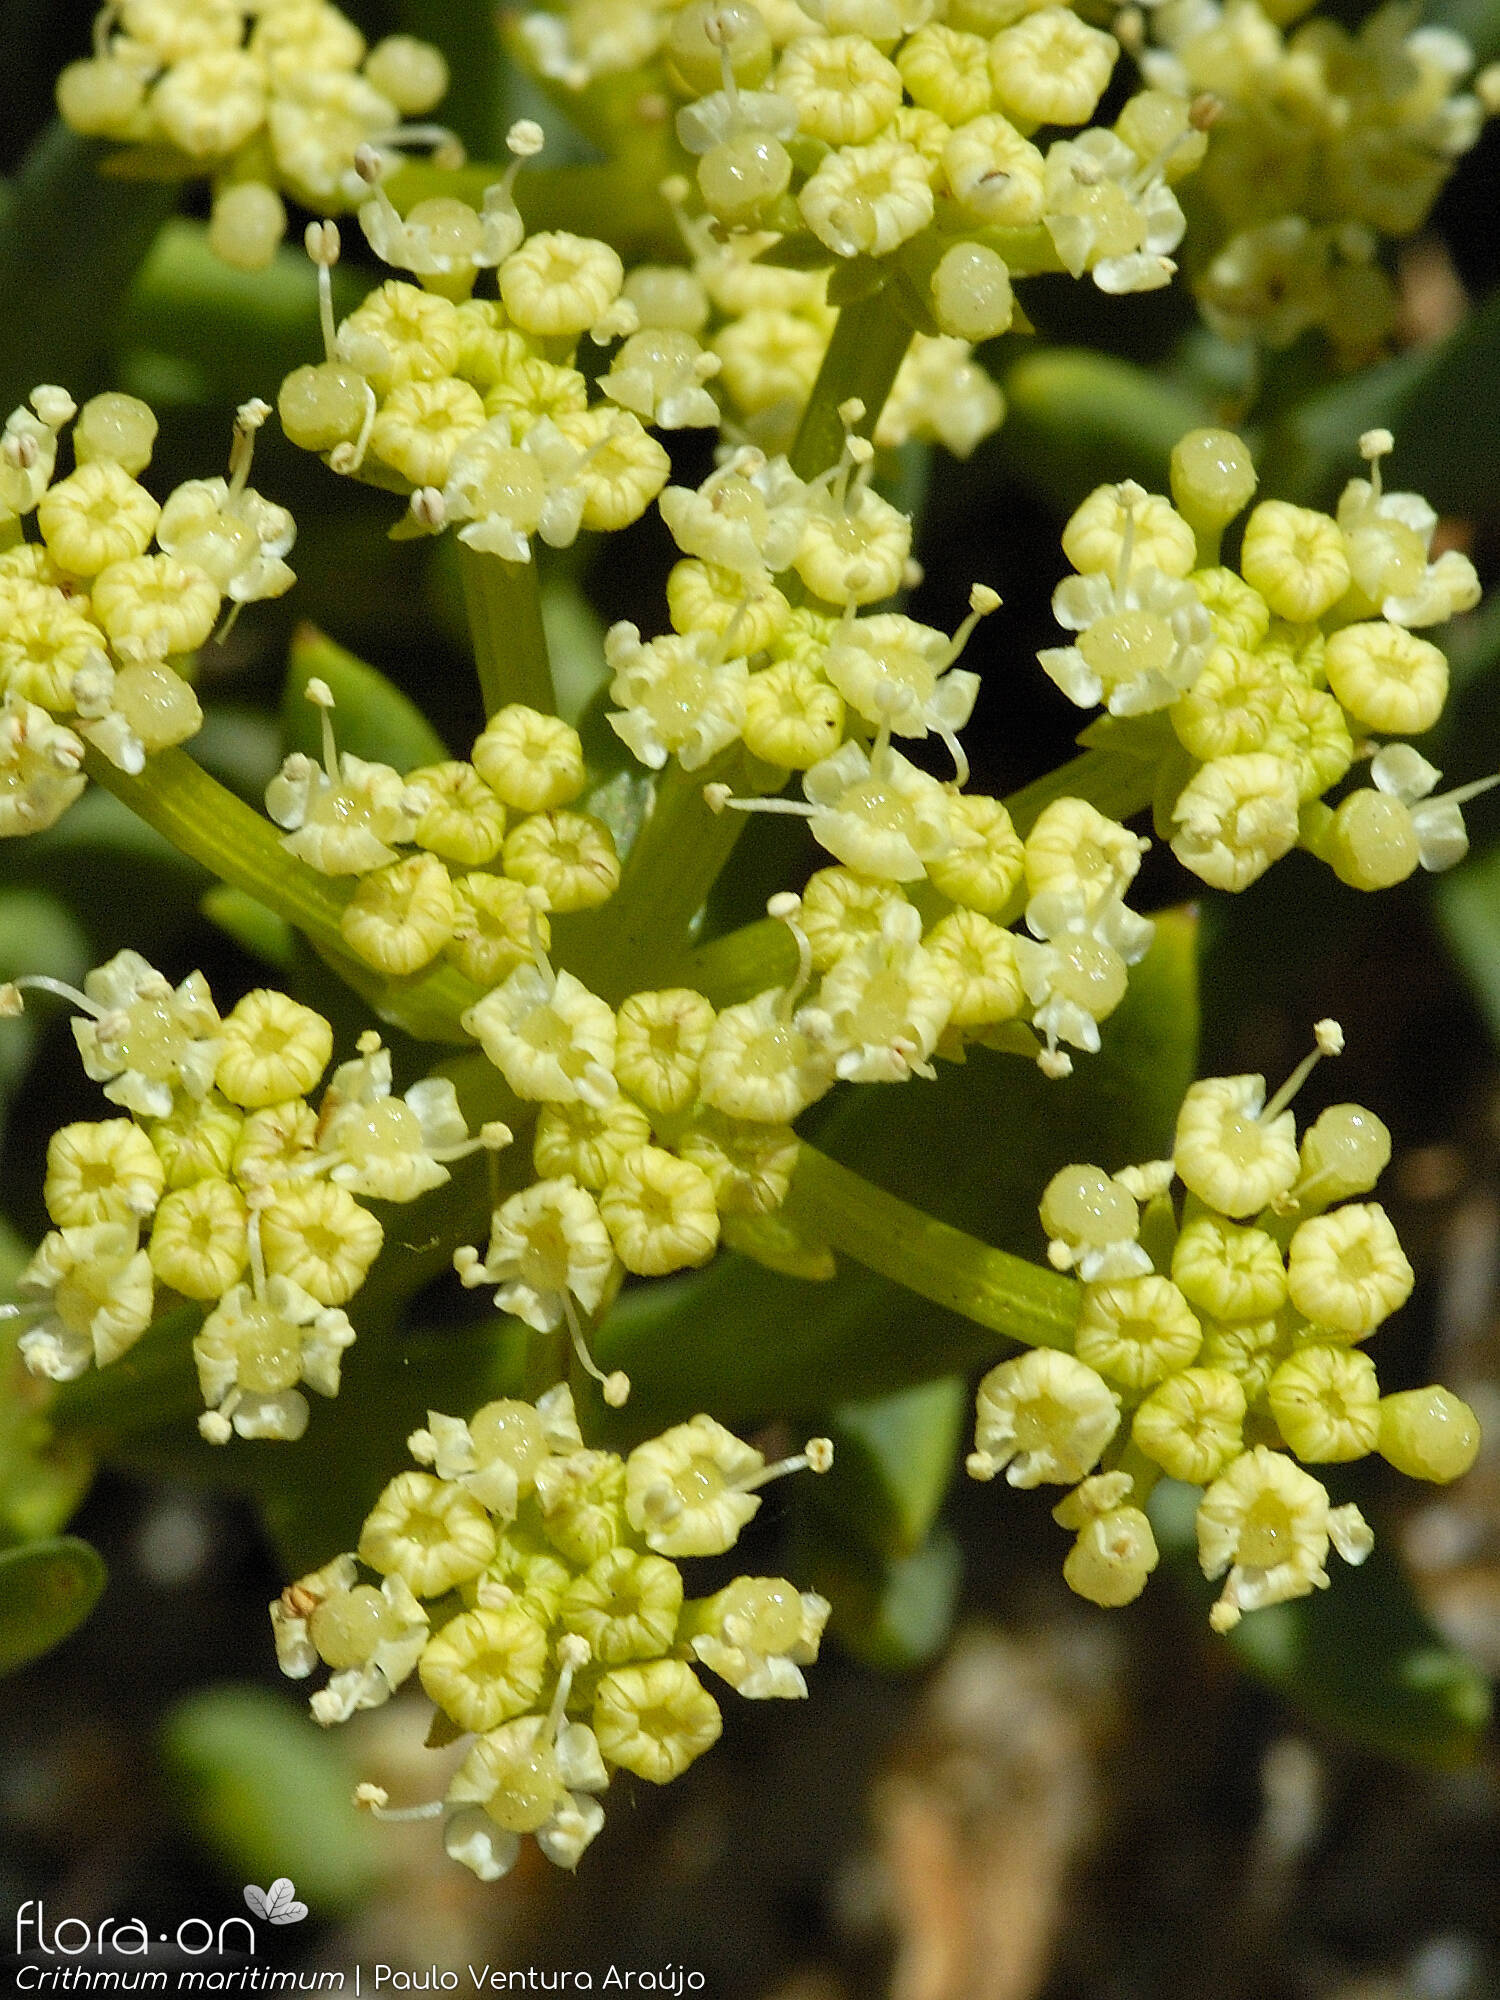 Crithmum maritimum - Flor (close-up) | Paulo Ventura Araújo; CC BY-NC 4.0